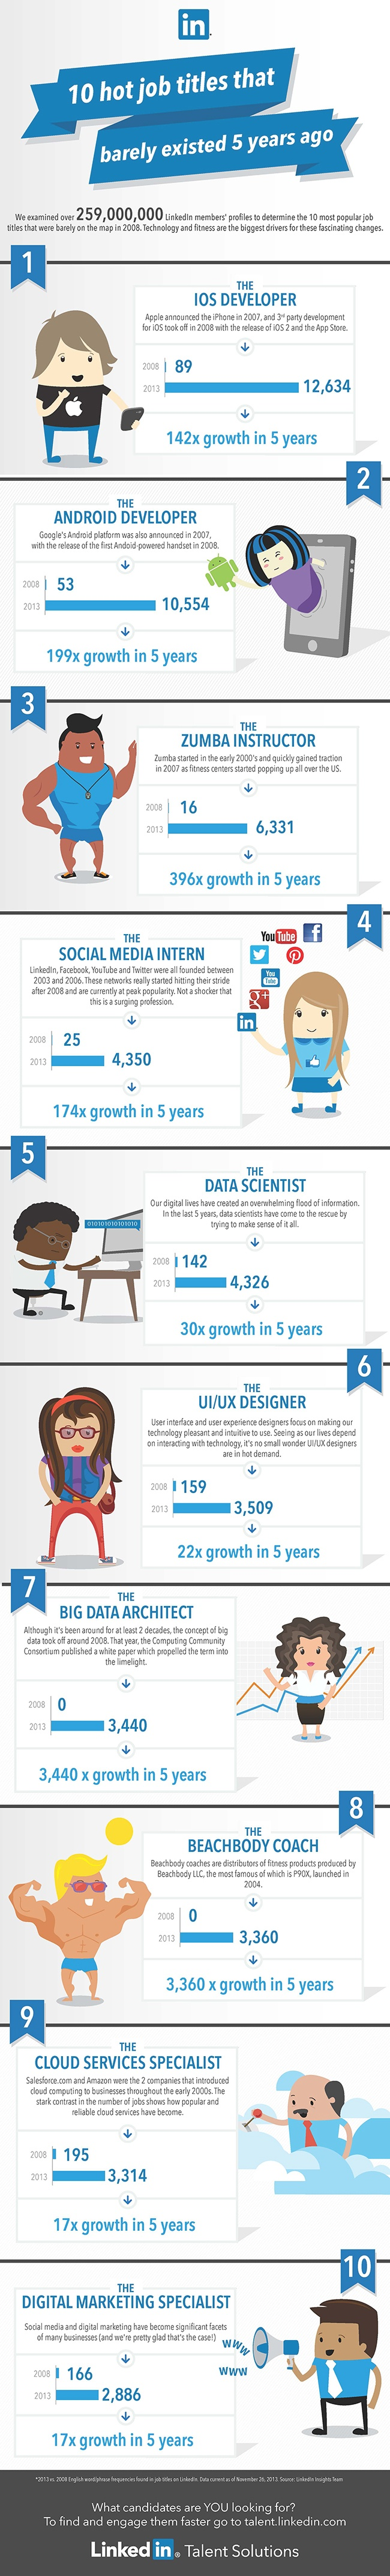 10 Popular Job Titles That Barely Existed 5 Years Ago [Infographic] - by TINYpulse